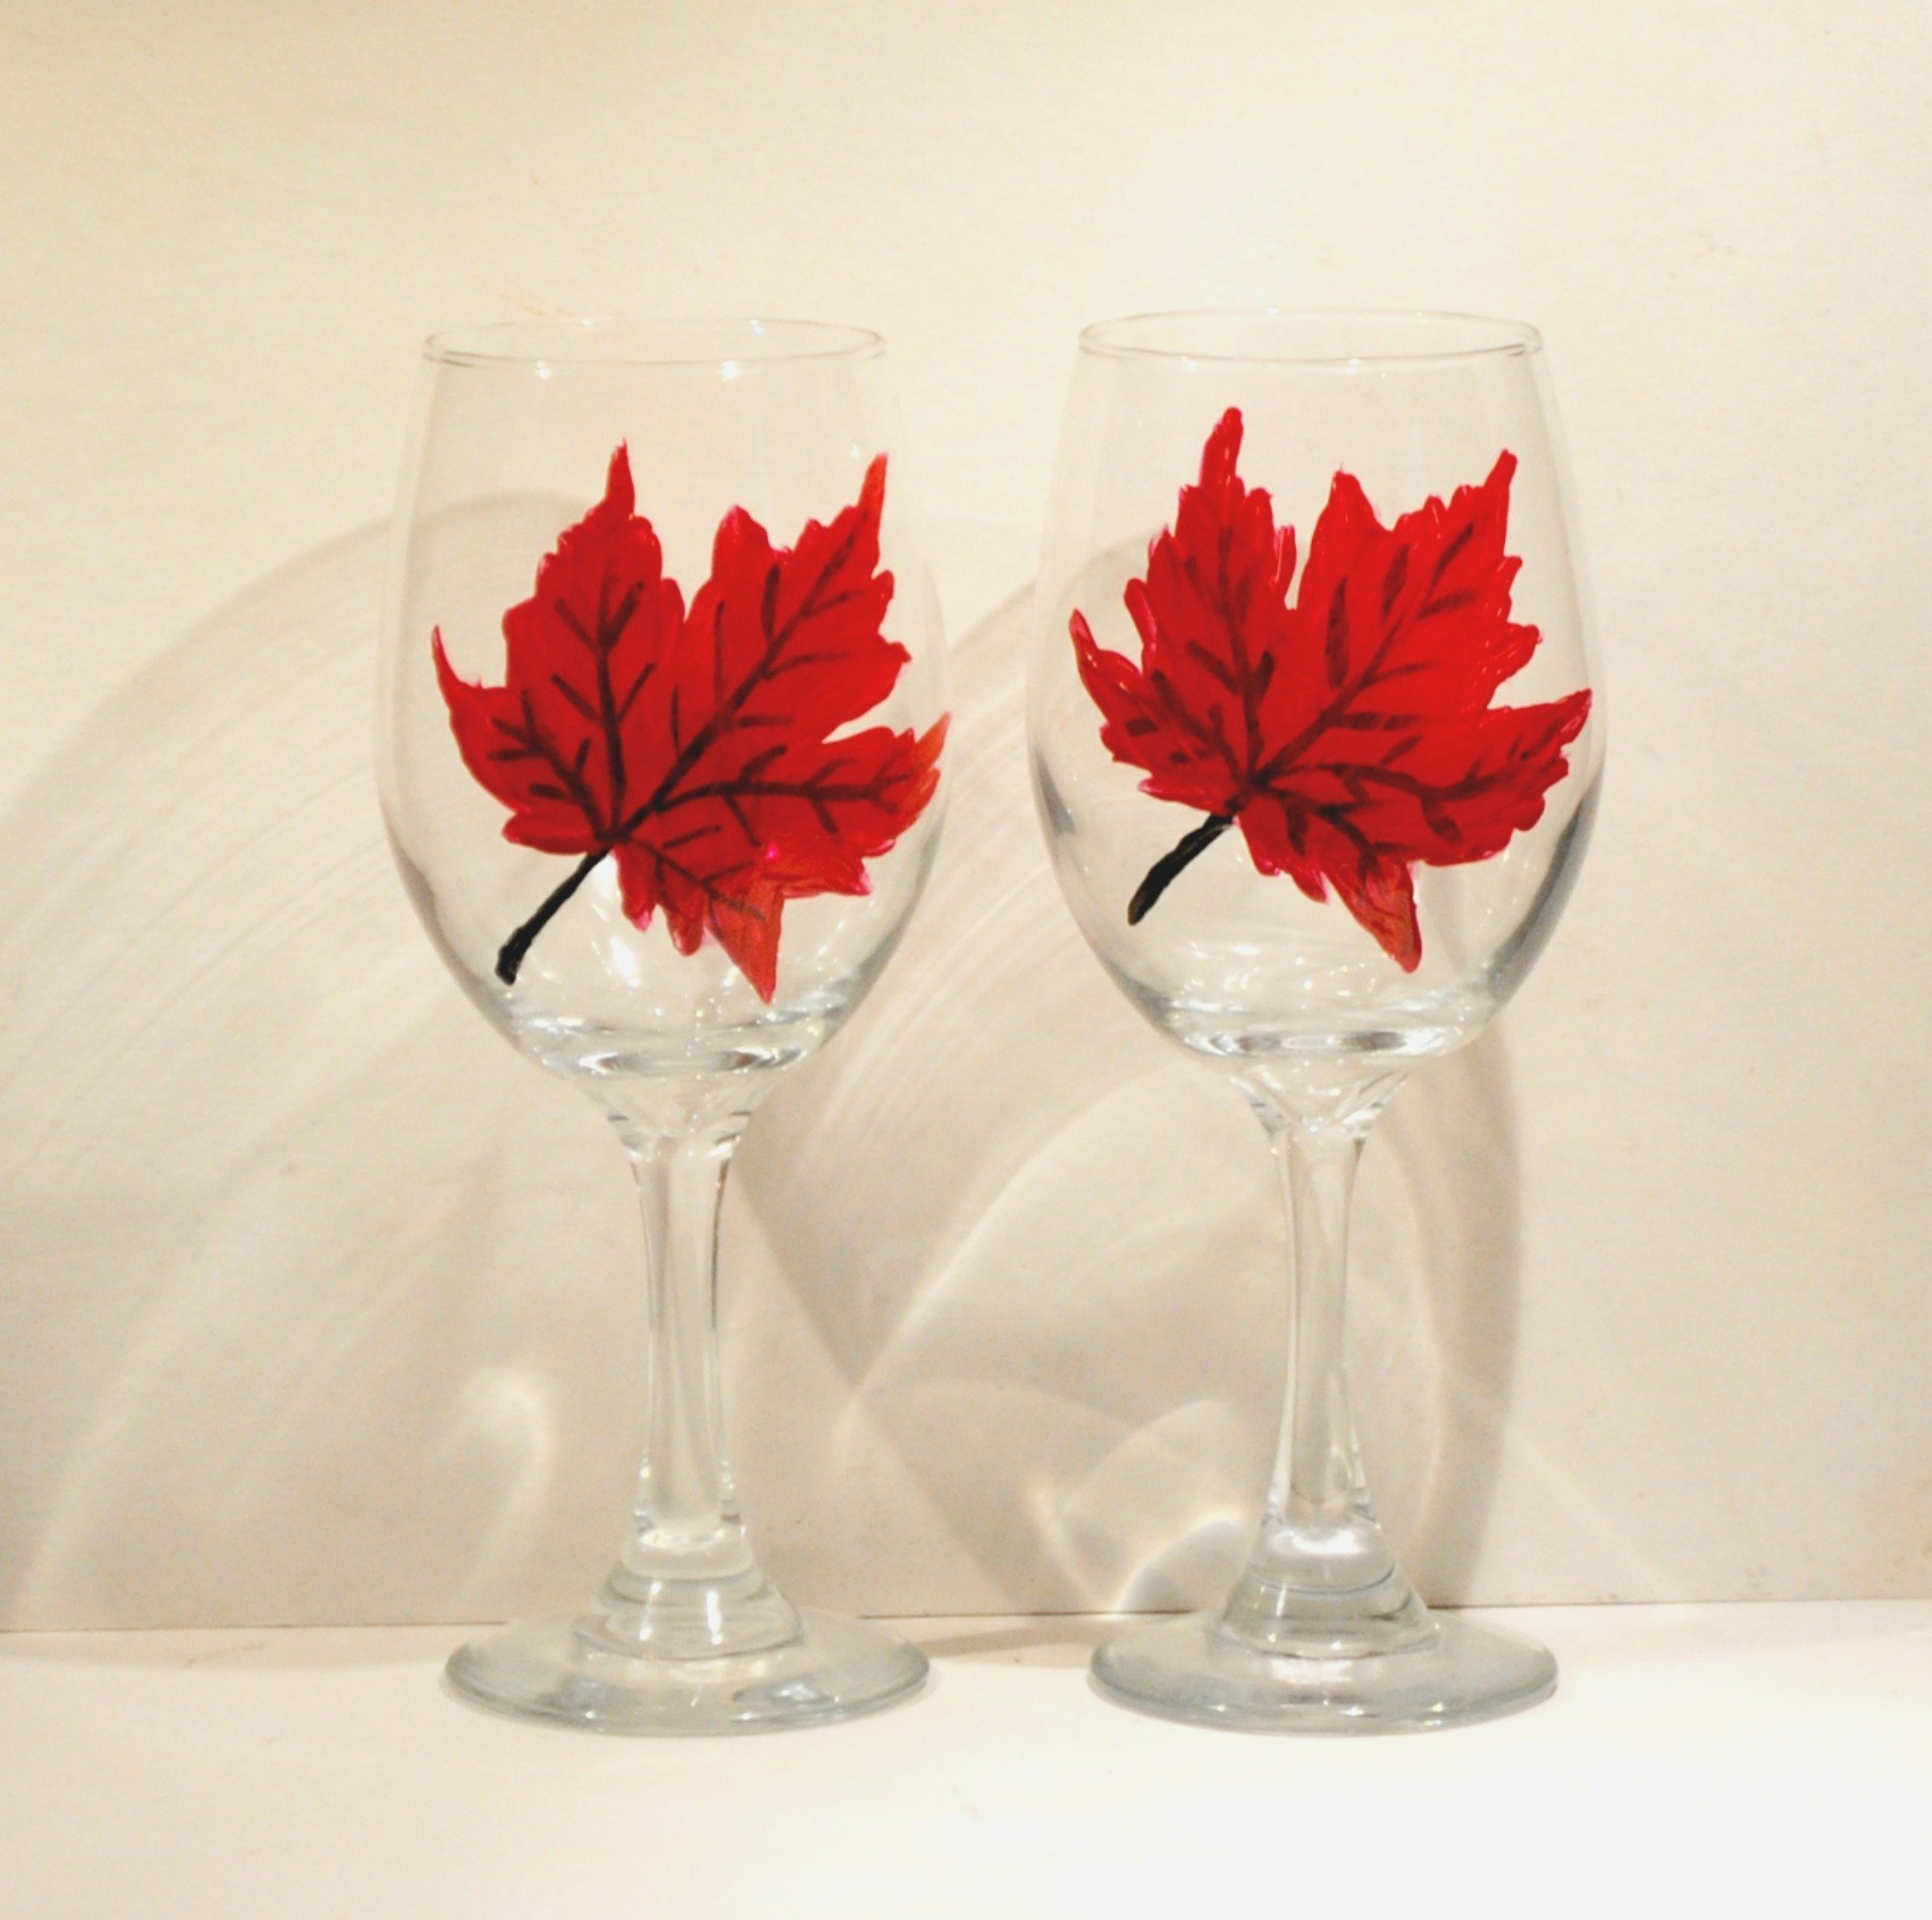 Autumn Red Maple Leaf Hand Painted Stemmed Wine Glasses (Set of 2), Fall Home Décor